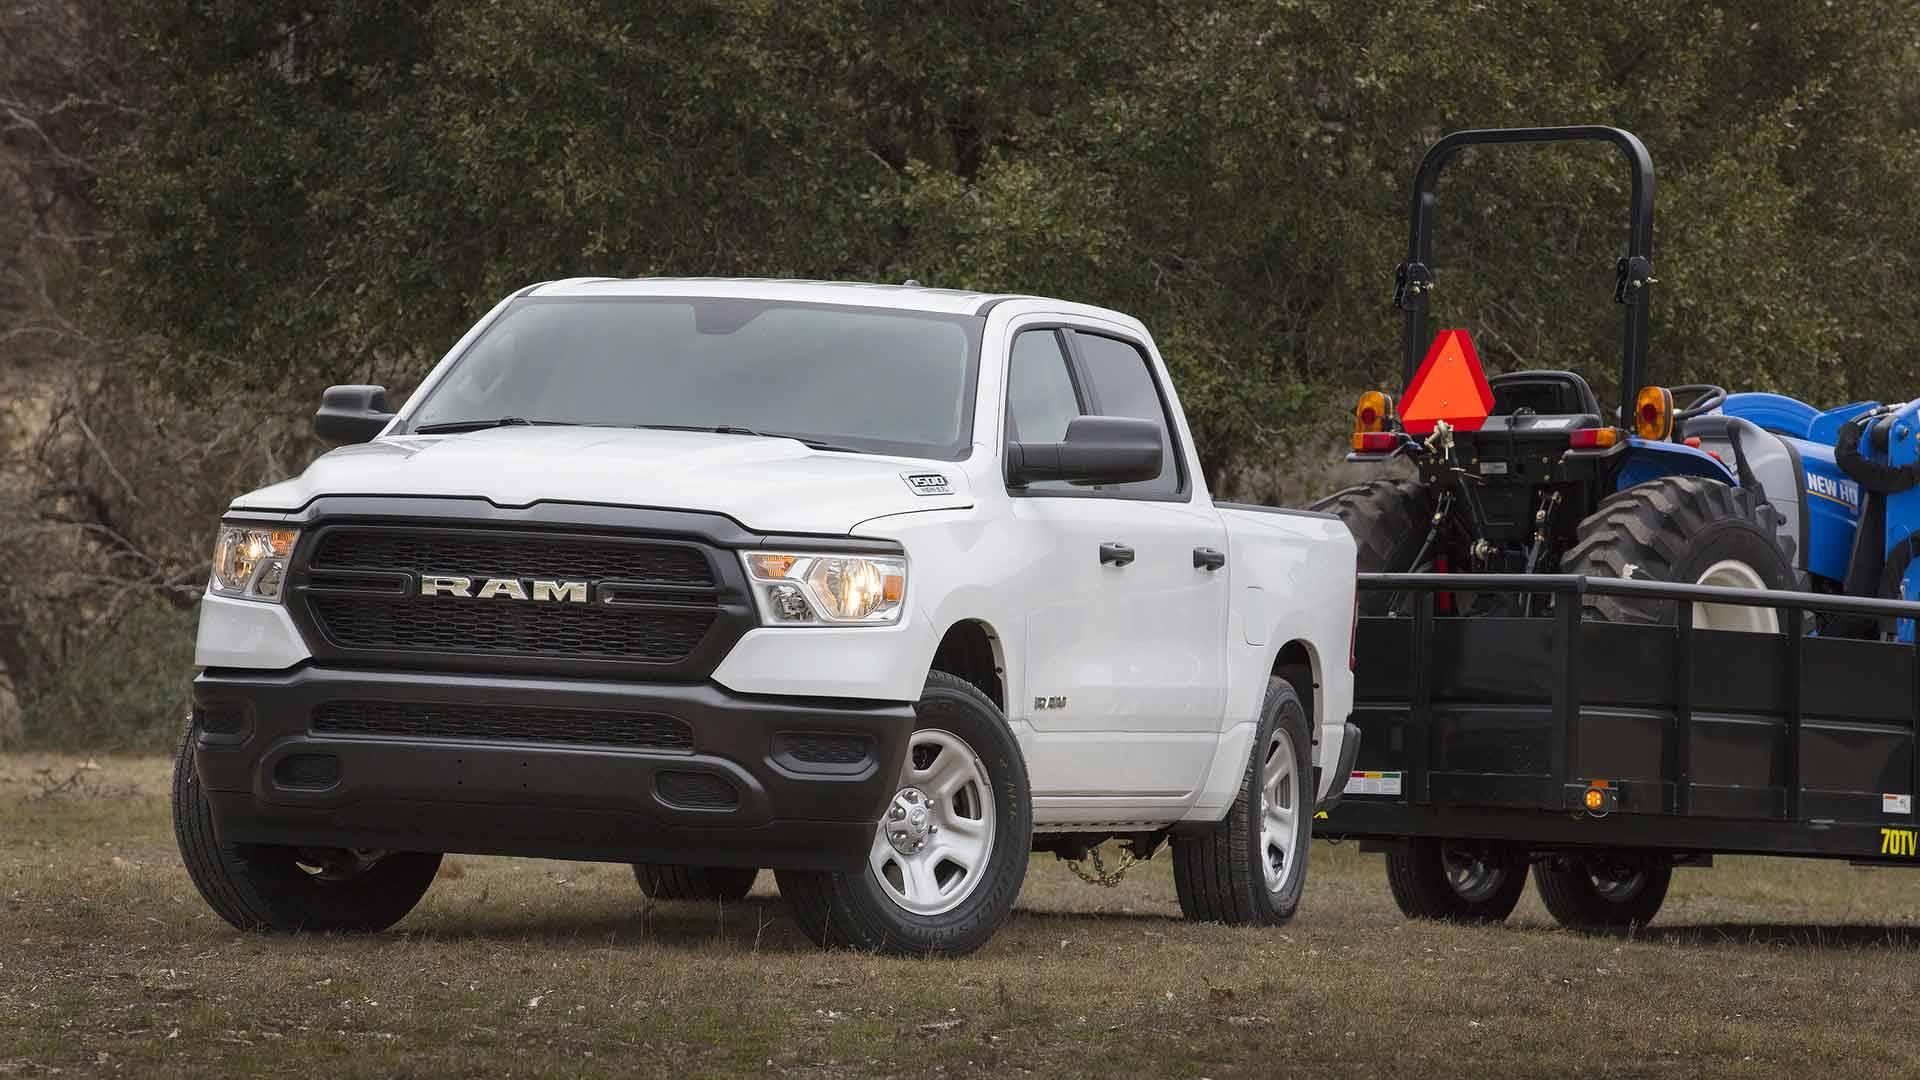 Ram Gets To Work With Debut Of 2019 1500 Tradesman